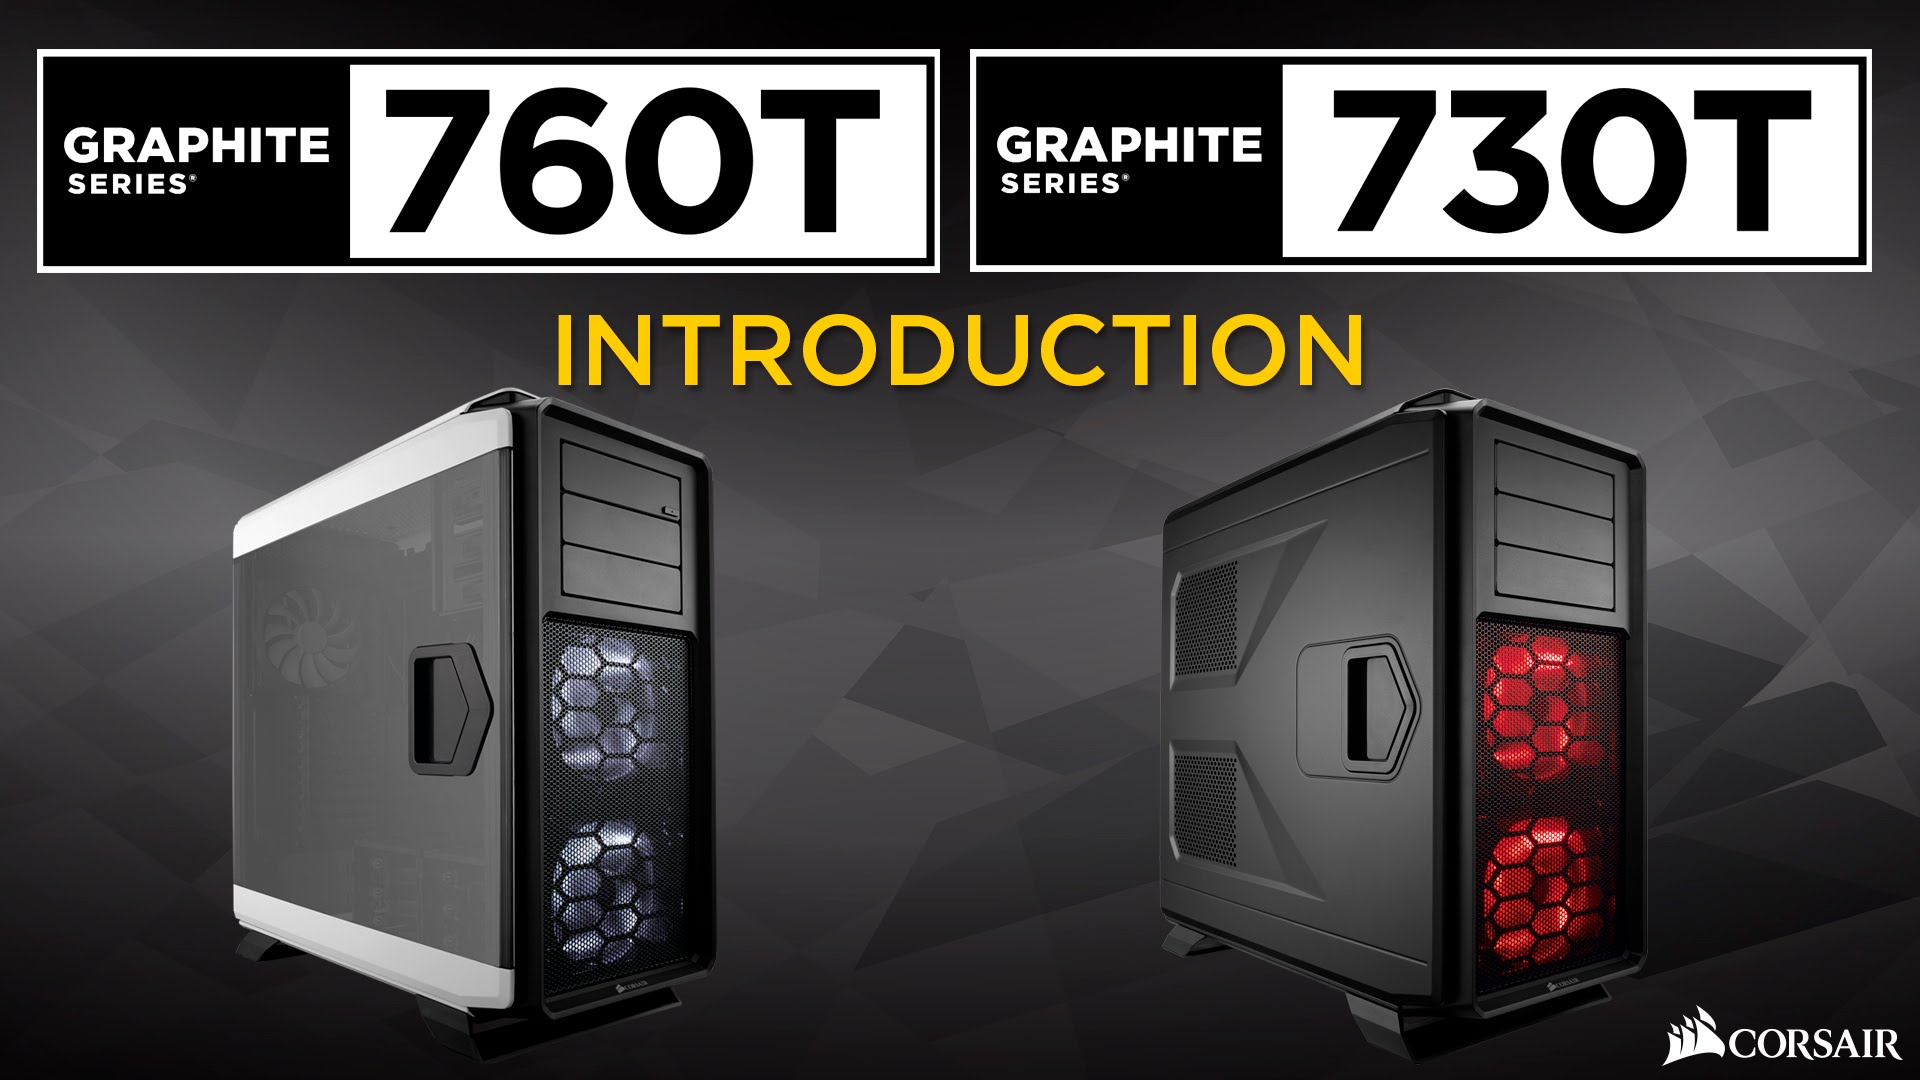 Corsair Graphite Series 760t Black Full Tower Windowed Case Home Gt Circuit Breaker Panels 360 Modular Panel System Slide 1 Of 12show Larger Image Introducing The 730t And